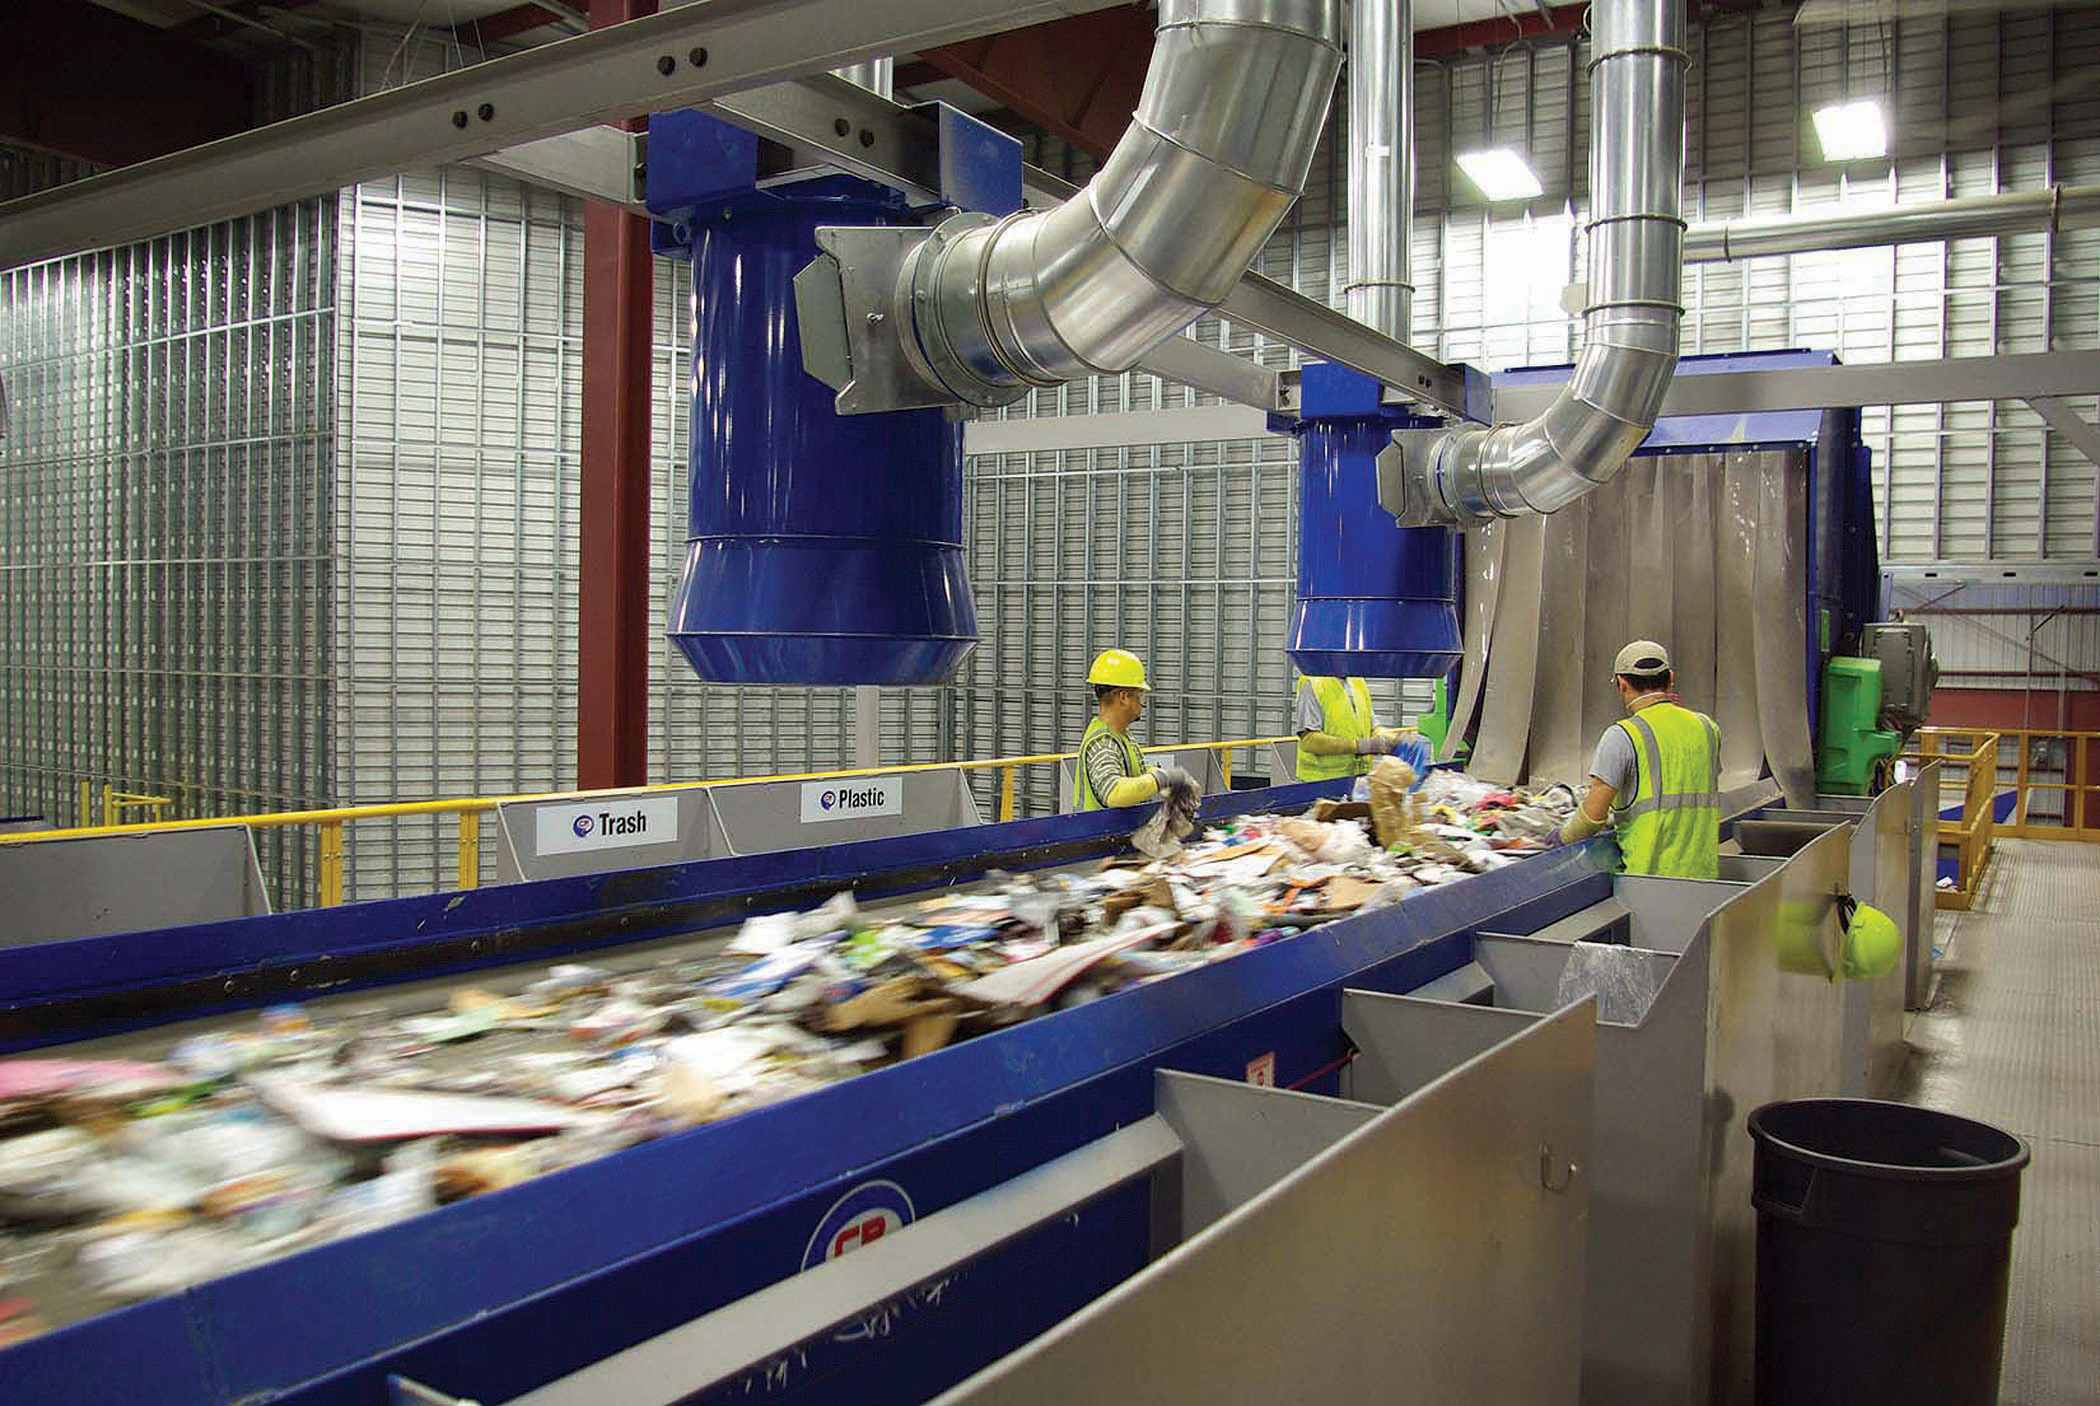 With 67 recycling centers nationwide, recycling is a core component of how Republic Services helps preserve our planet.